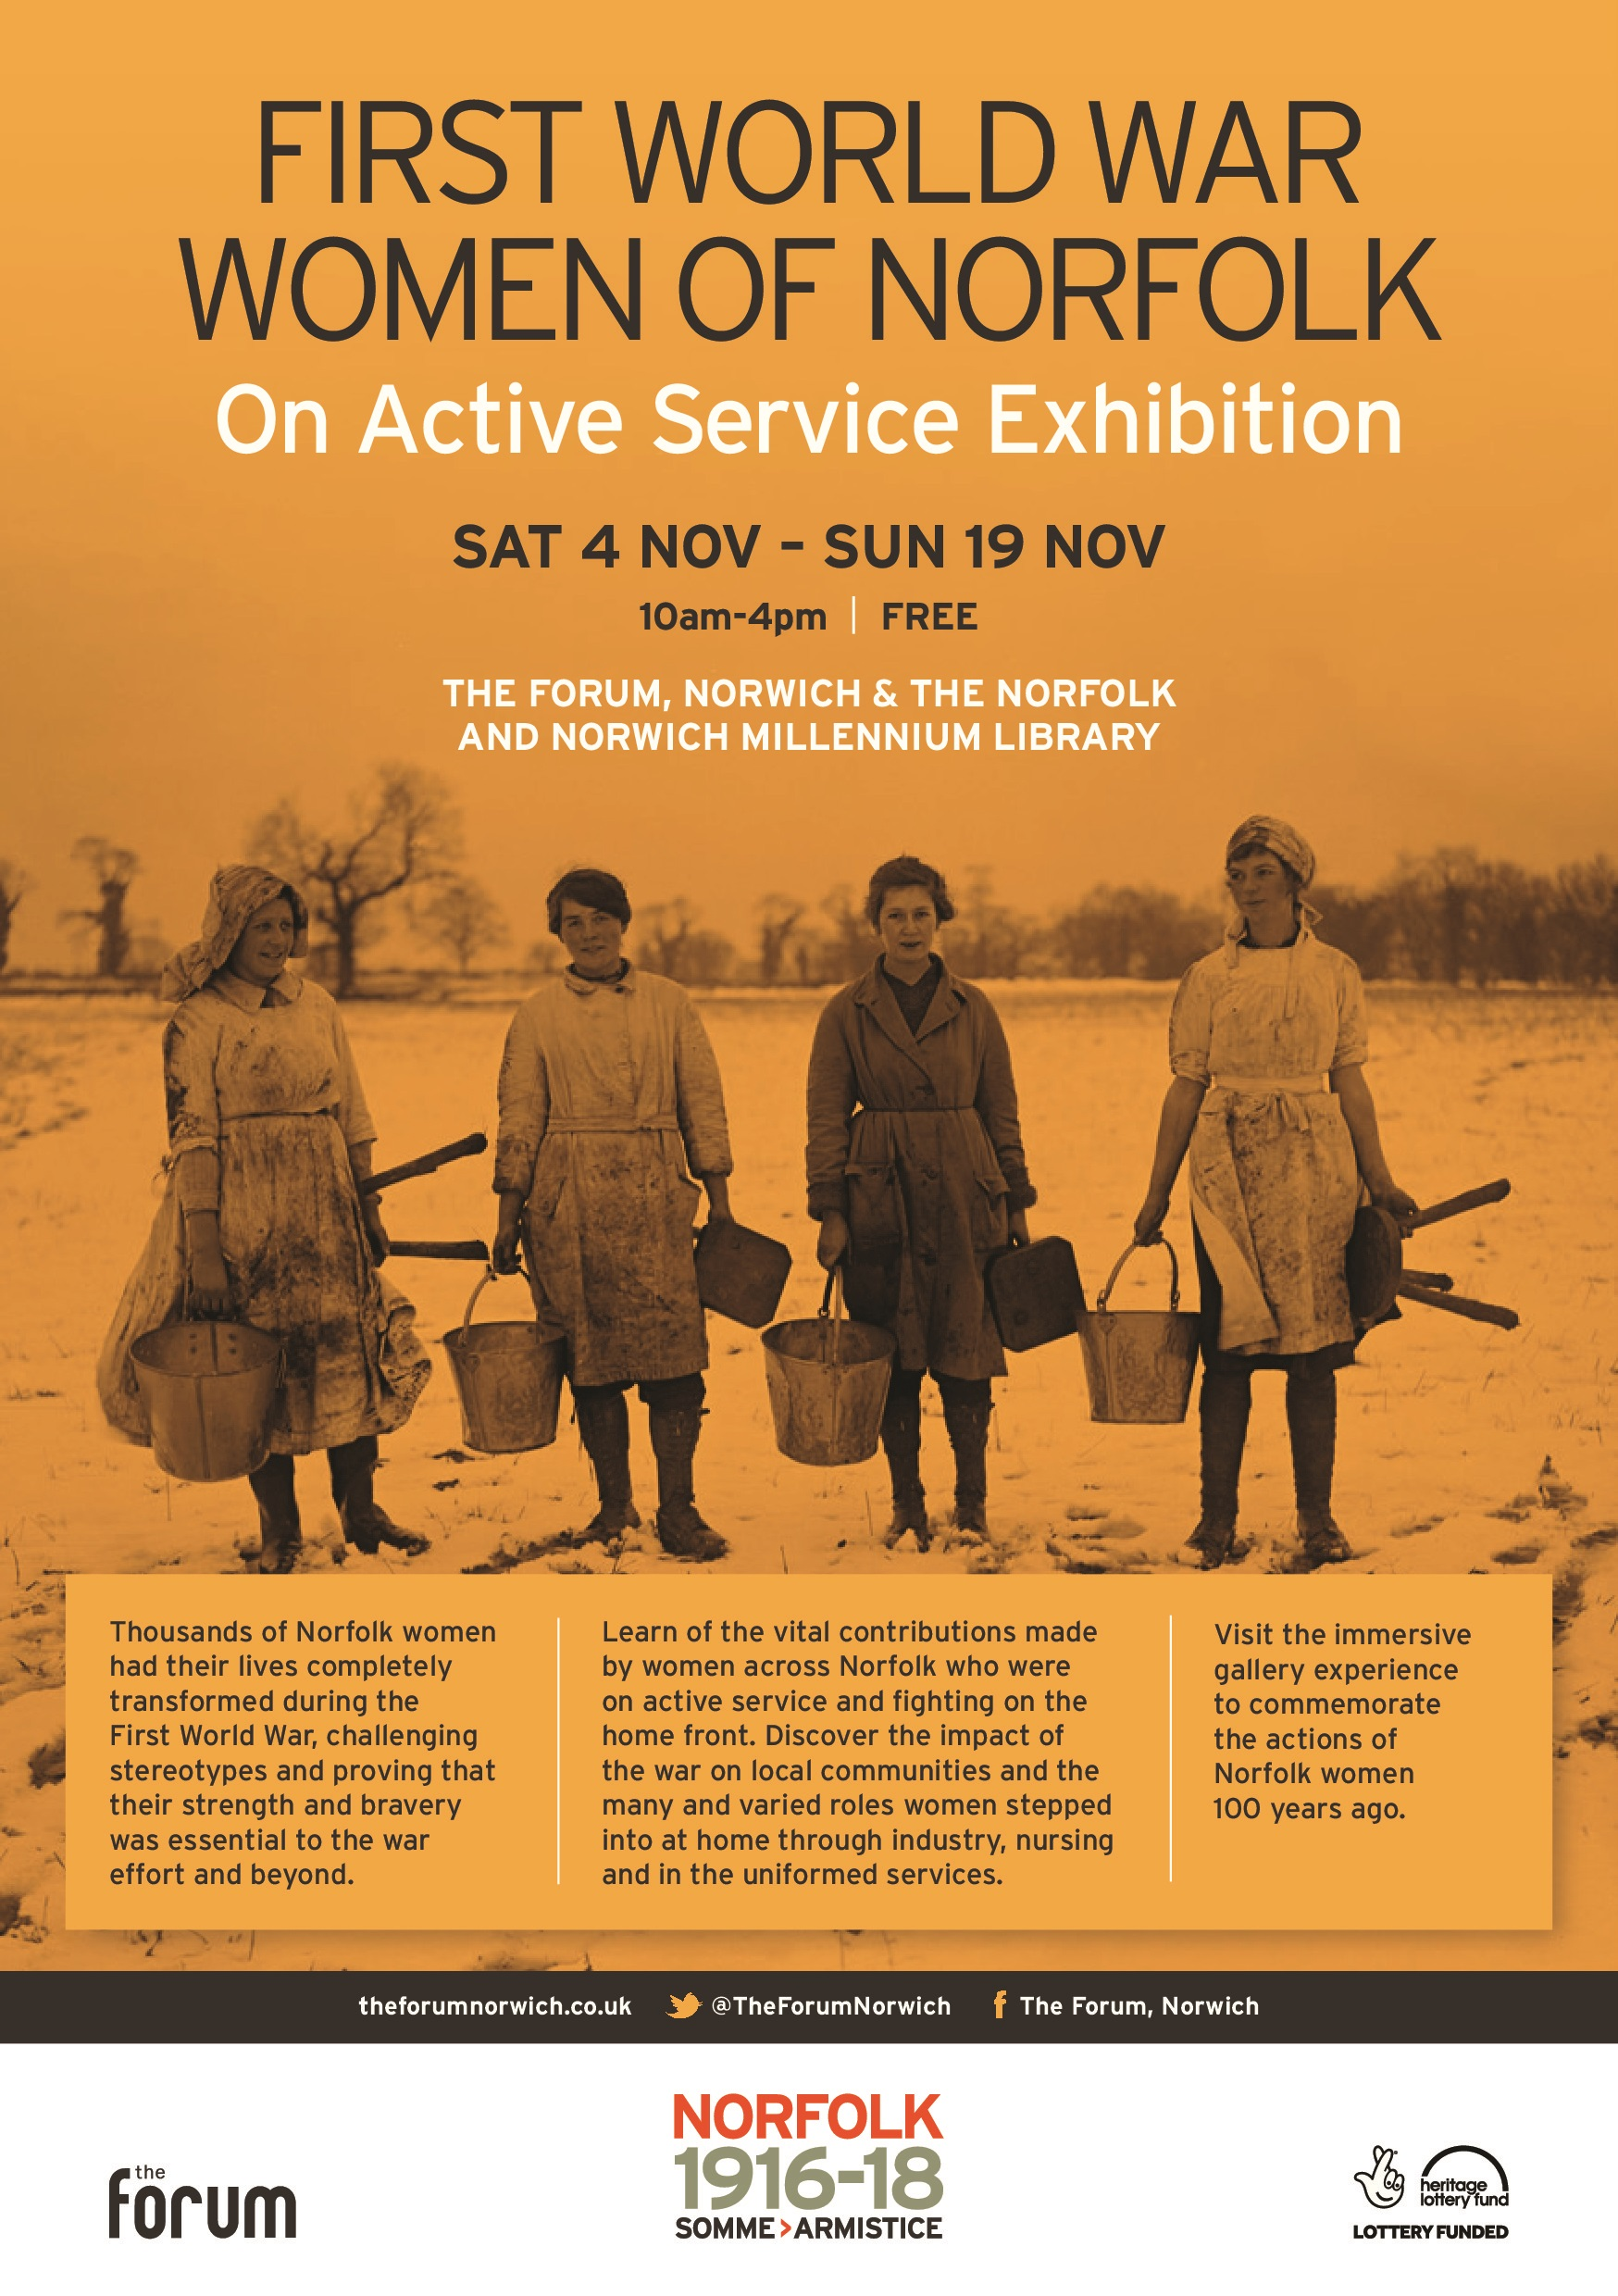 women in world war one The role of women in world war one has been brought to life thanks to an  exhibition at margam abbey staged to mark 100 years since the end.